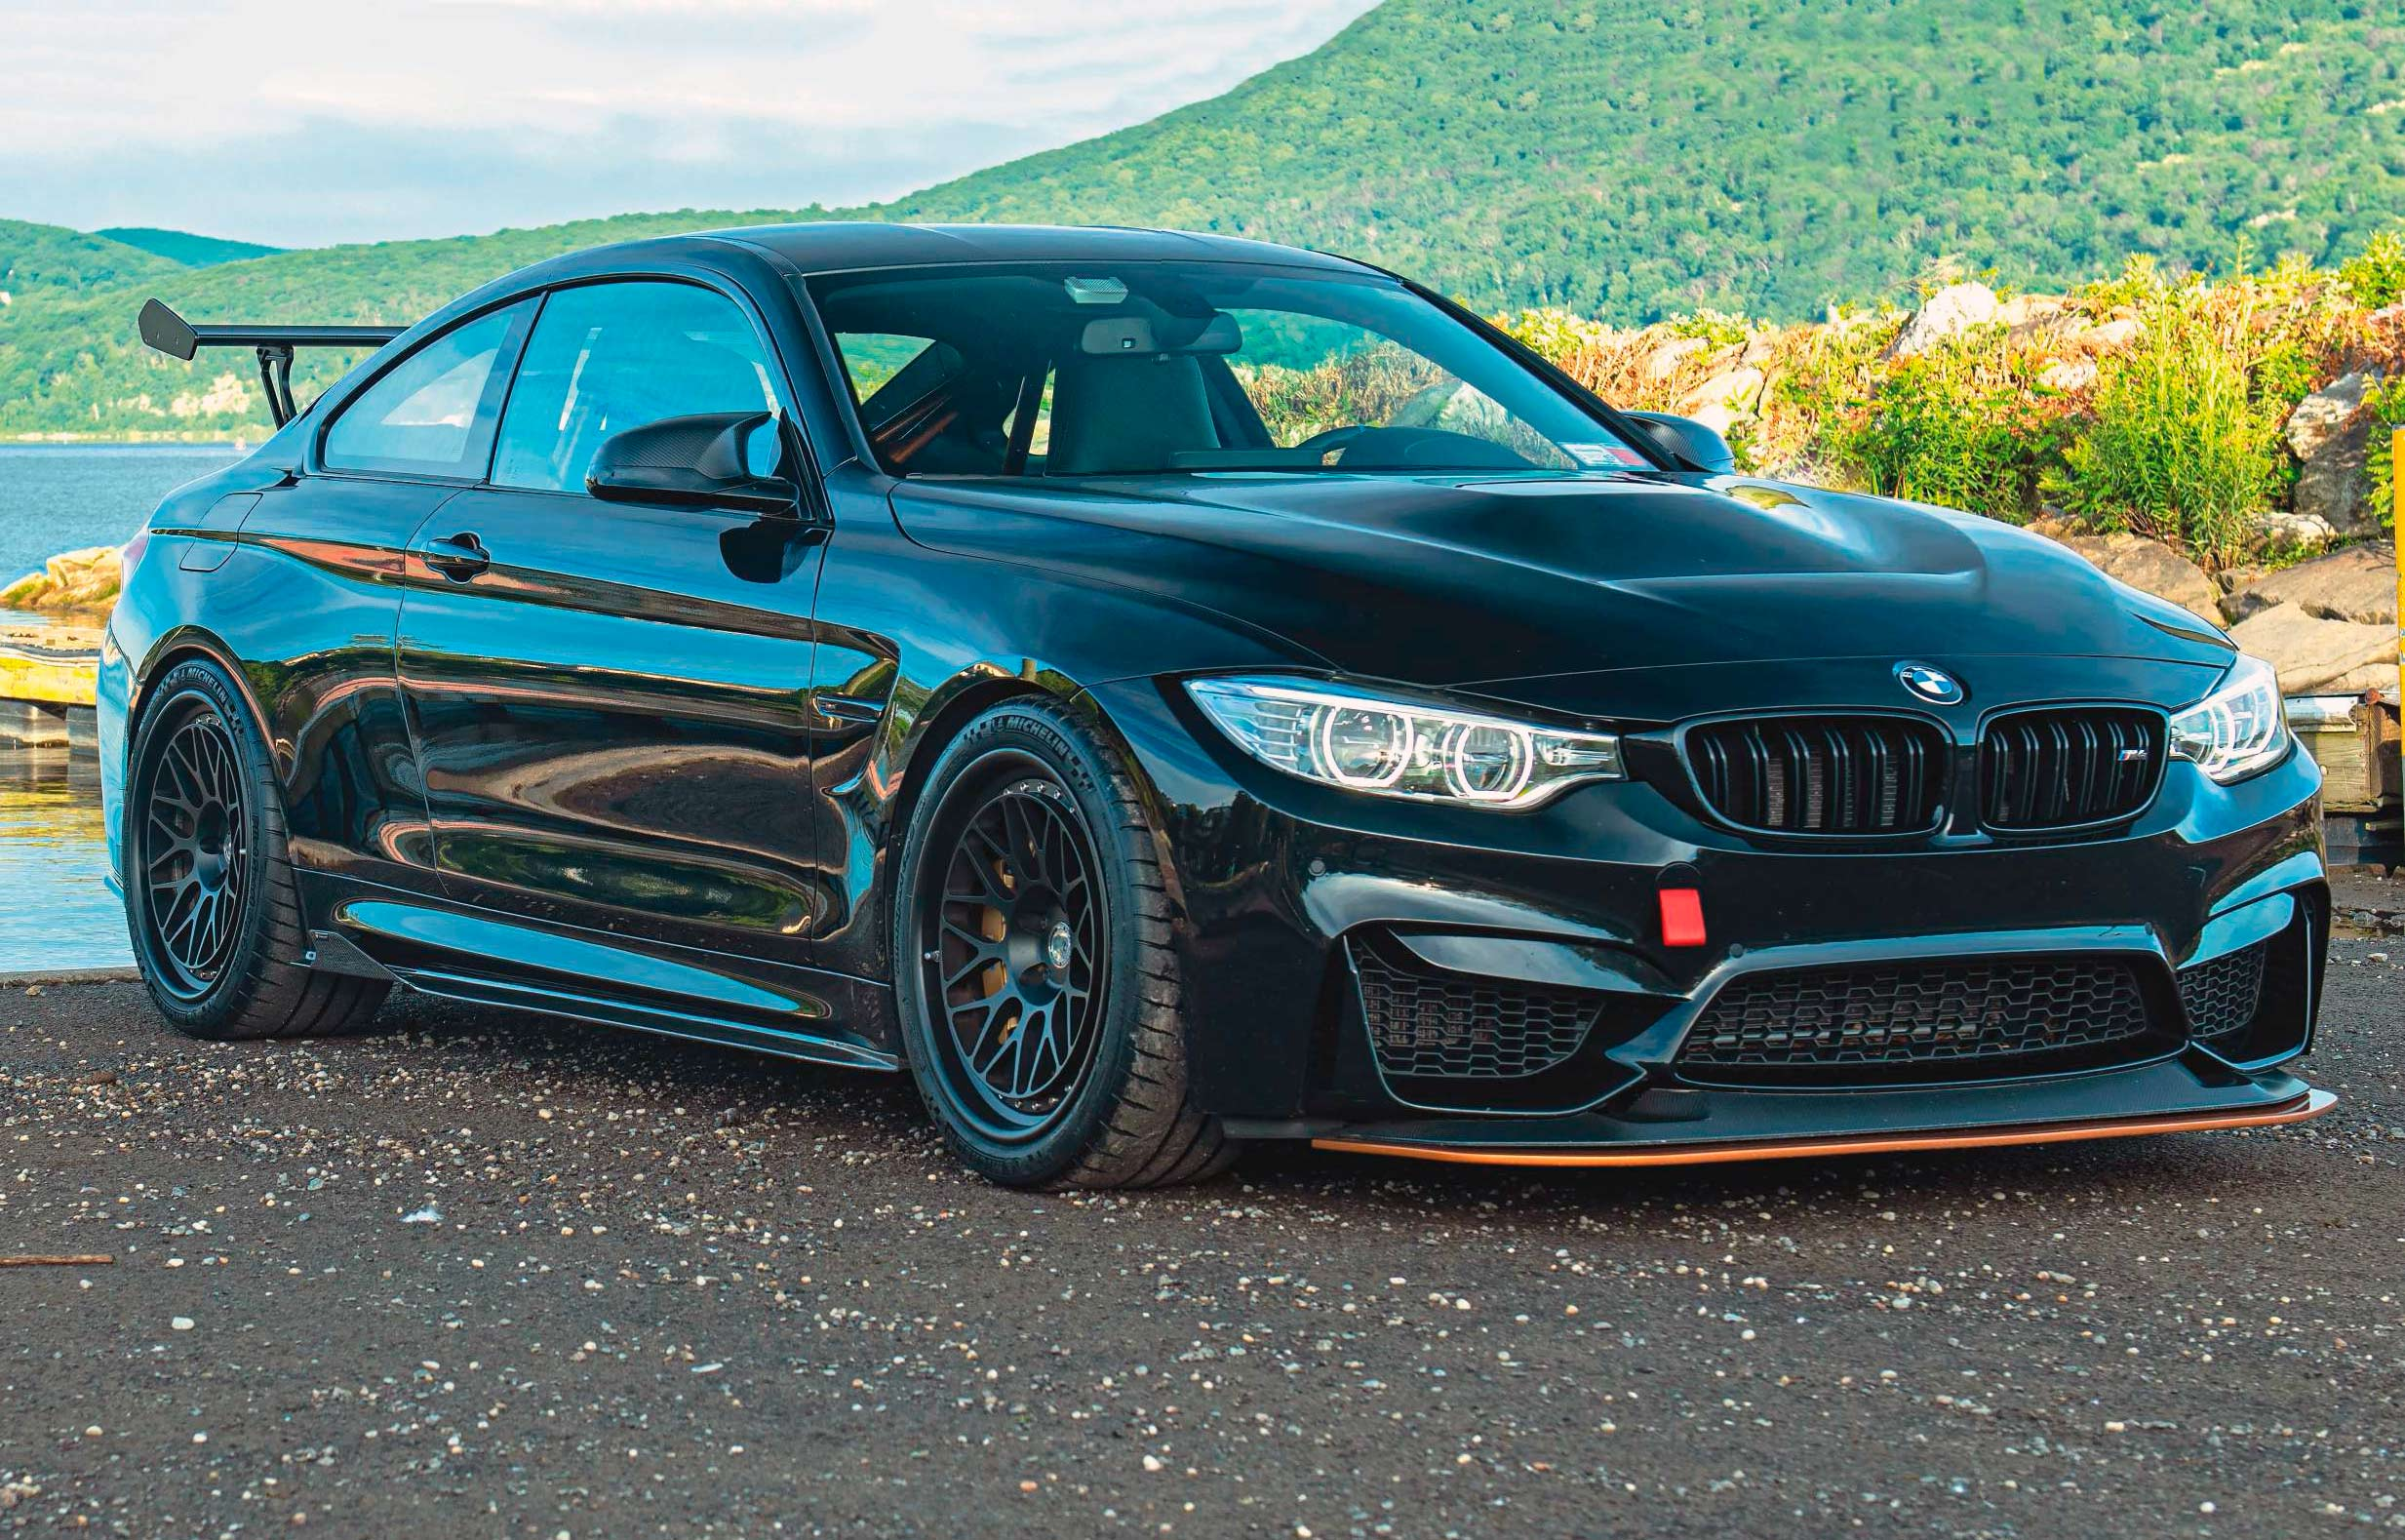 M4 Gts Albumccars Cars Images Collection